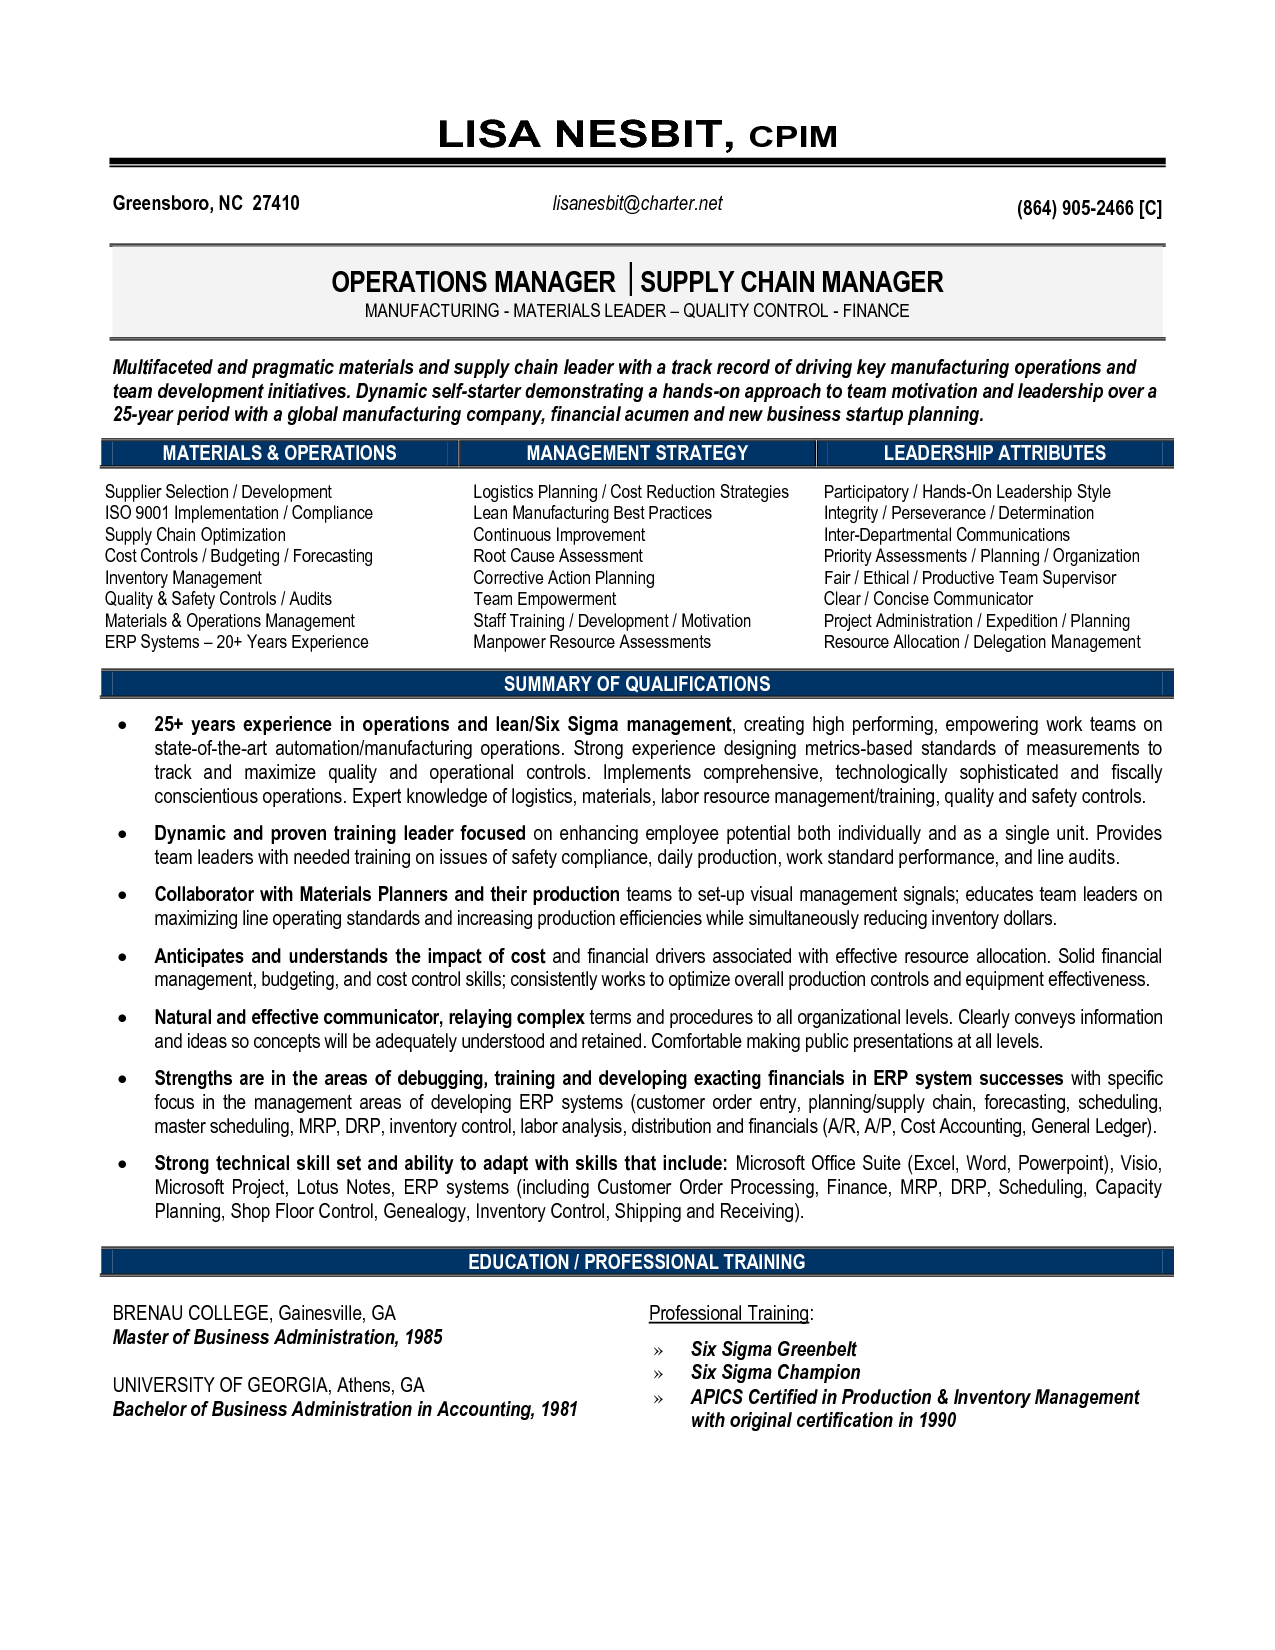 supply operation manager resume - 28 images - william menke sr ...